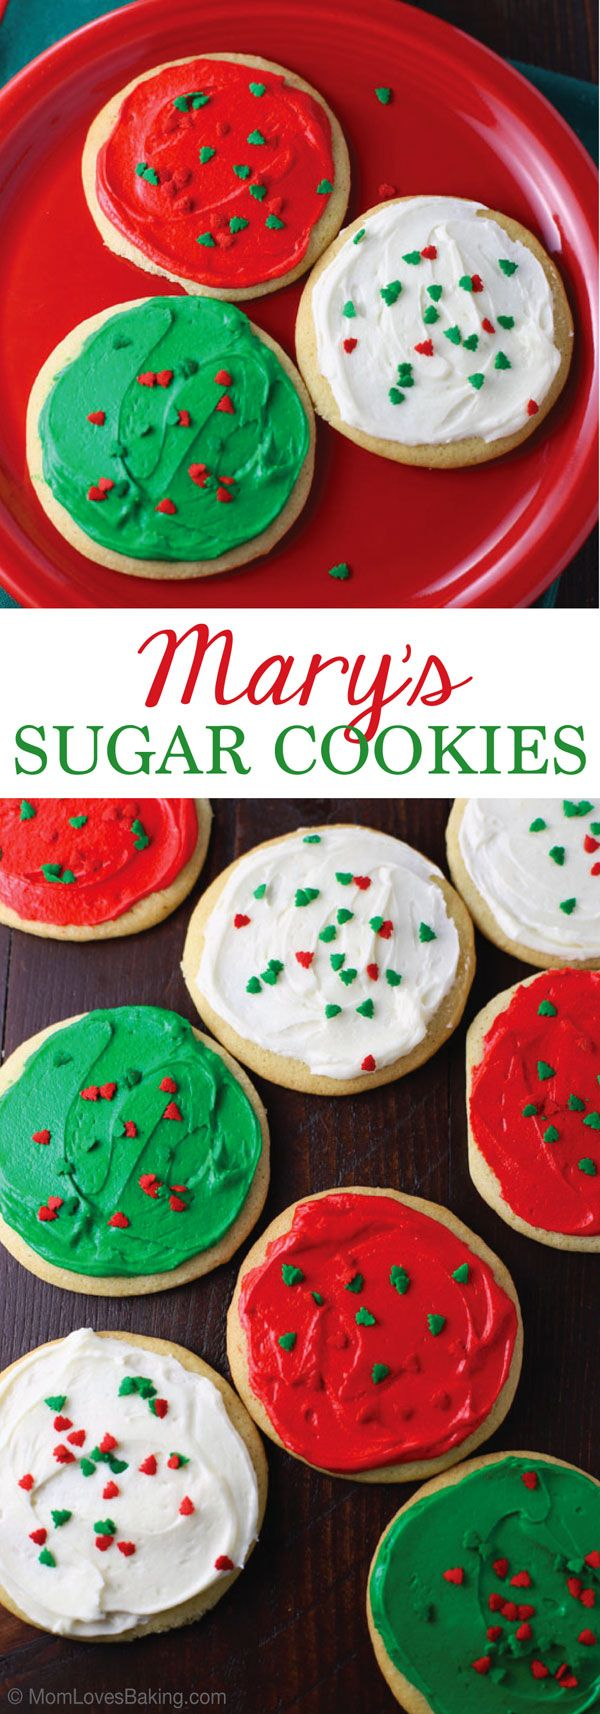 Mary's Sugar Cookies - a classic sugar cookie recipe that I've been making for 40 years. Perfect for the holidays or anytime! Get the recipe on MomLovesBaking.com